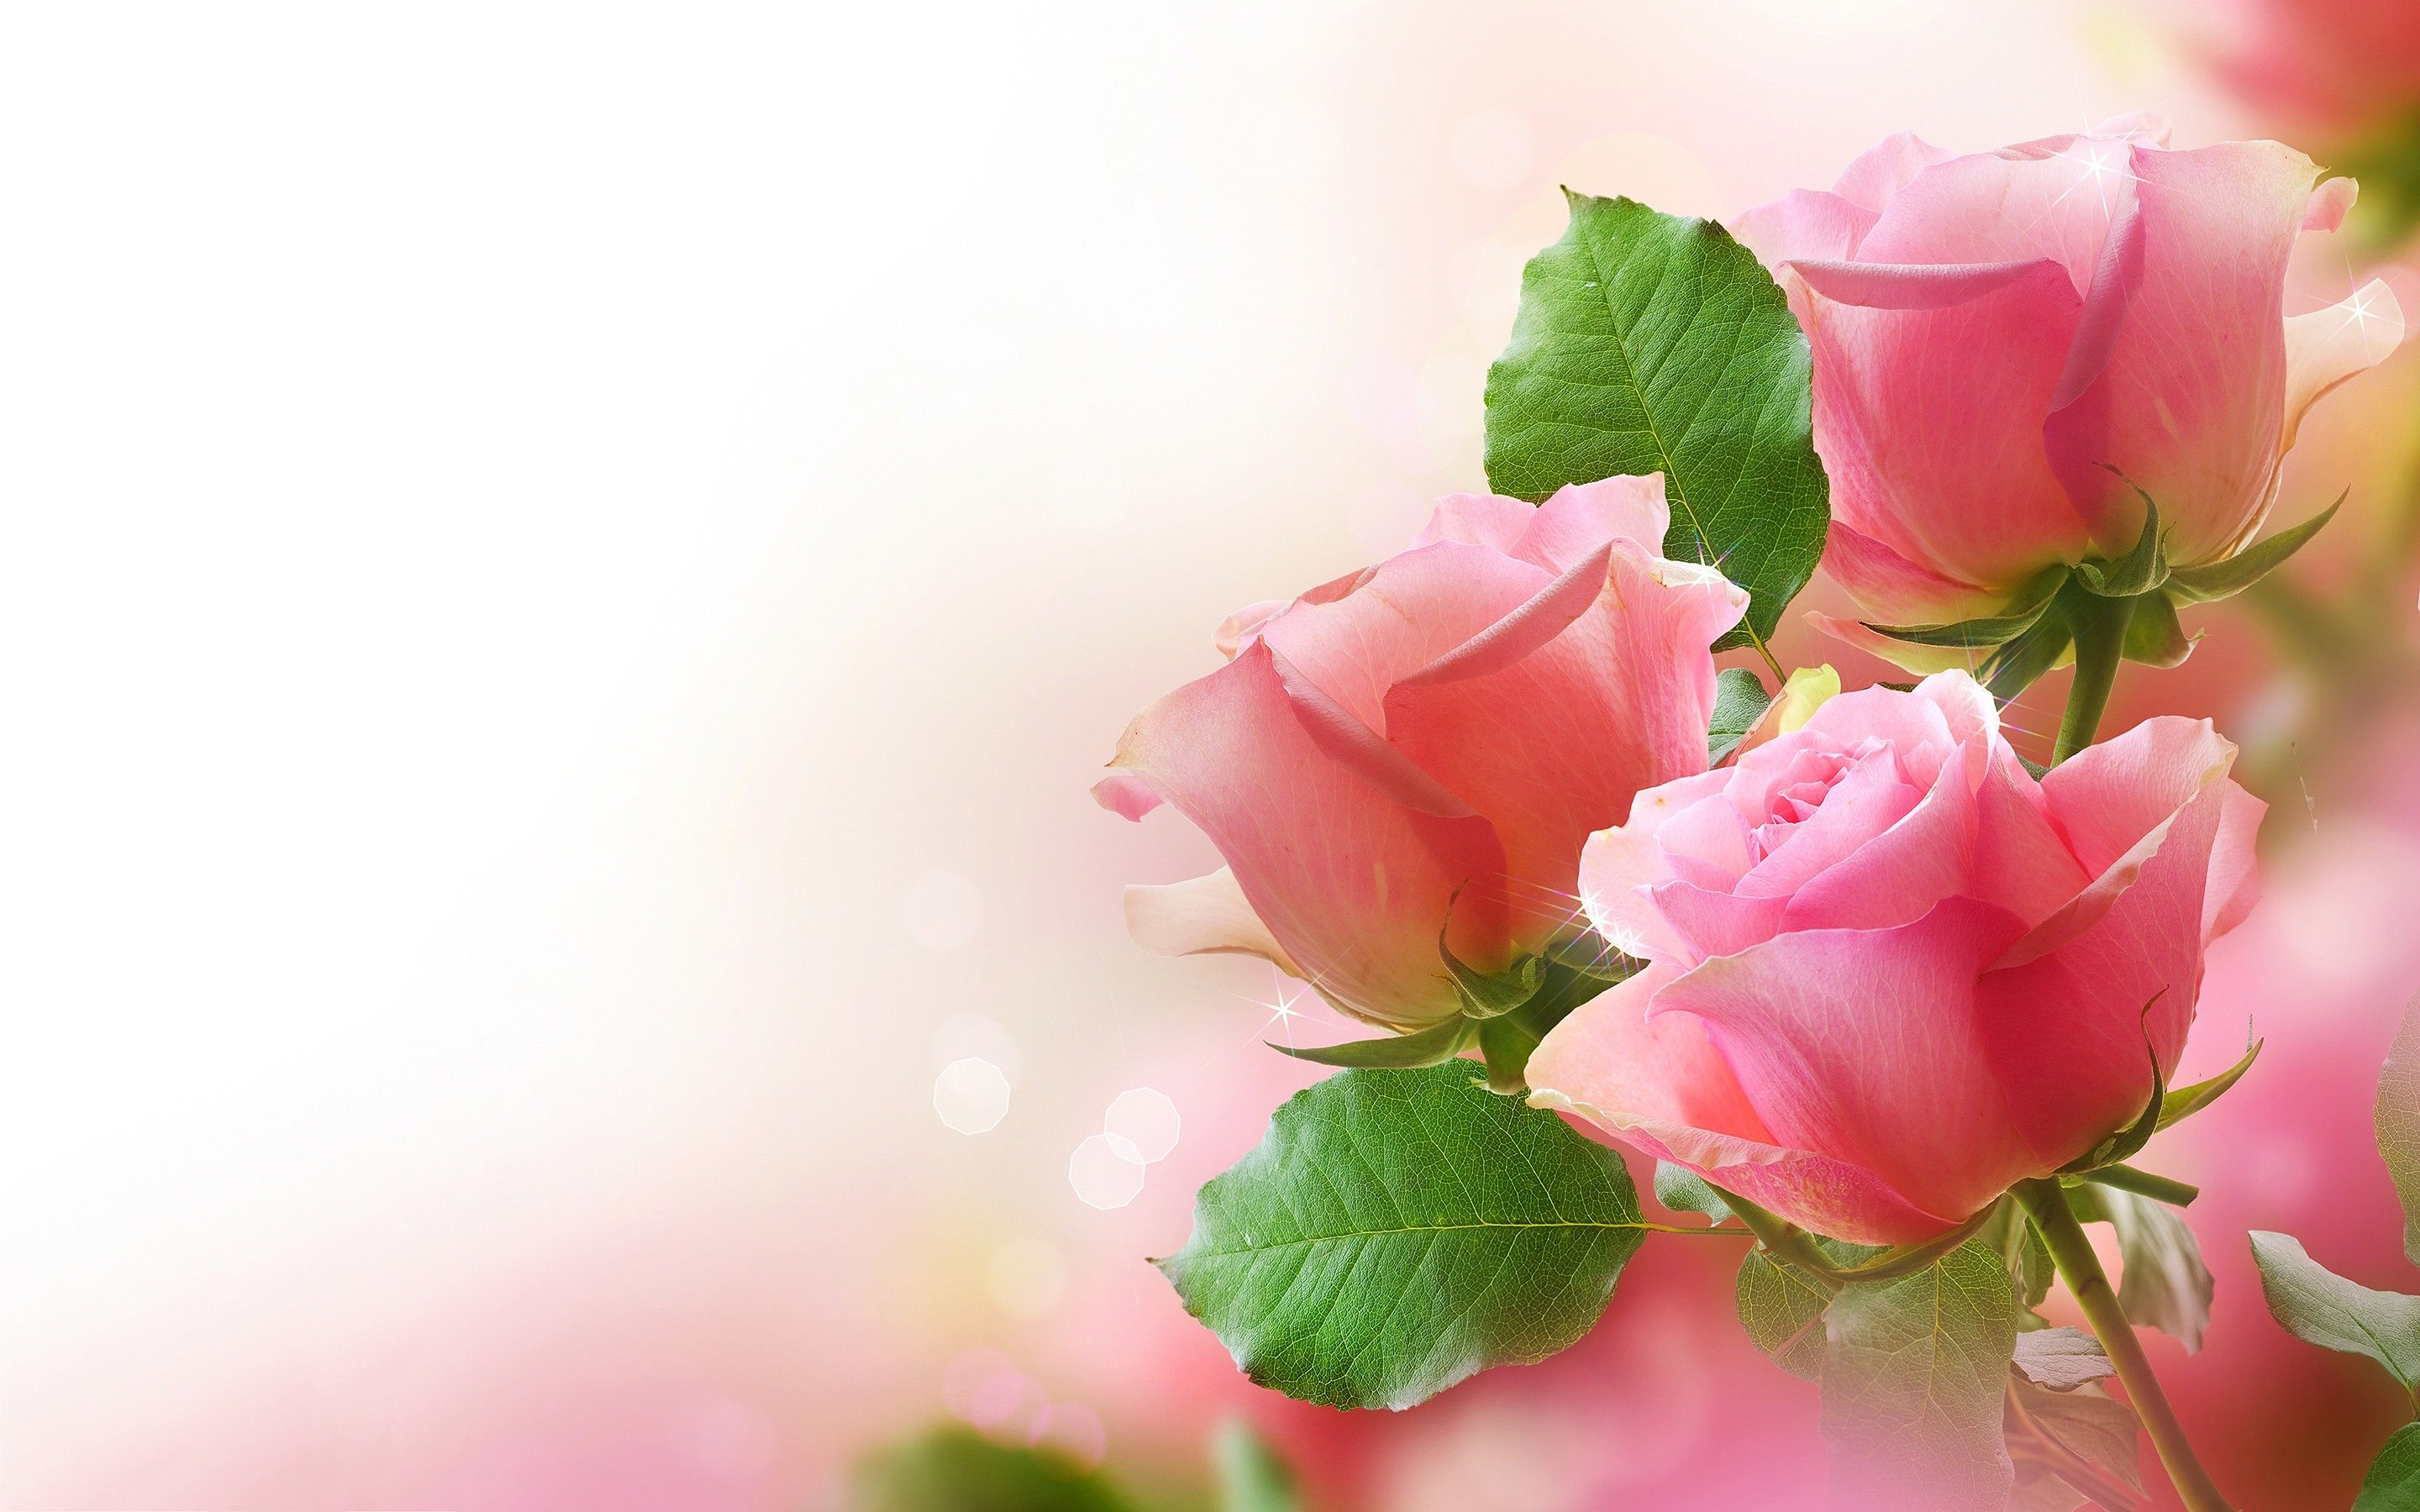 Rose Wallpapers For Desktop Full Size Hd Cool 7 HD Wallpapers ...